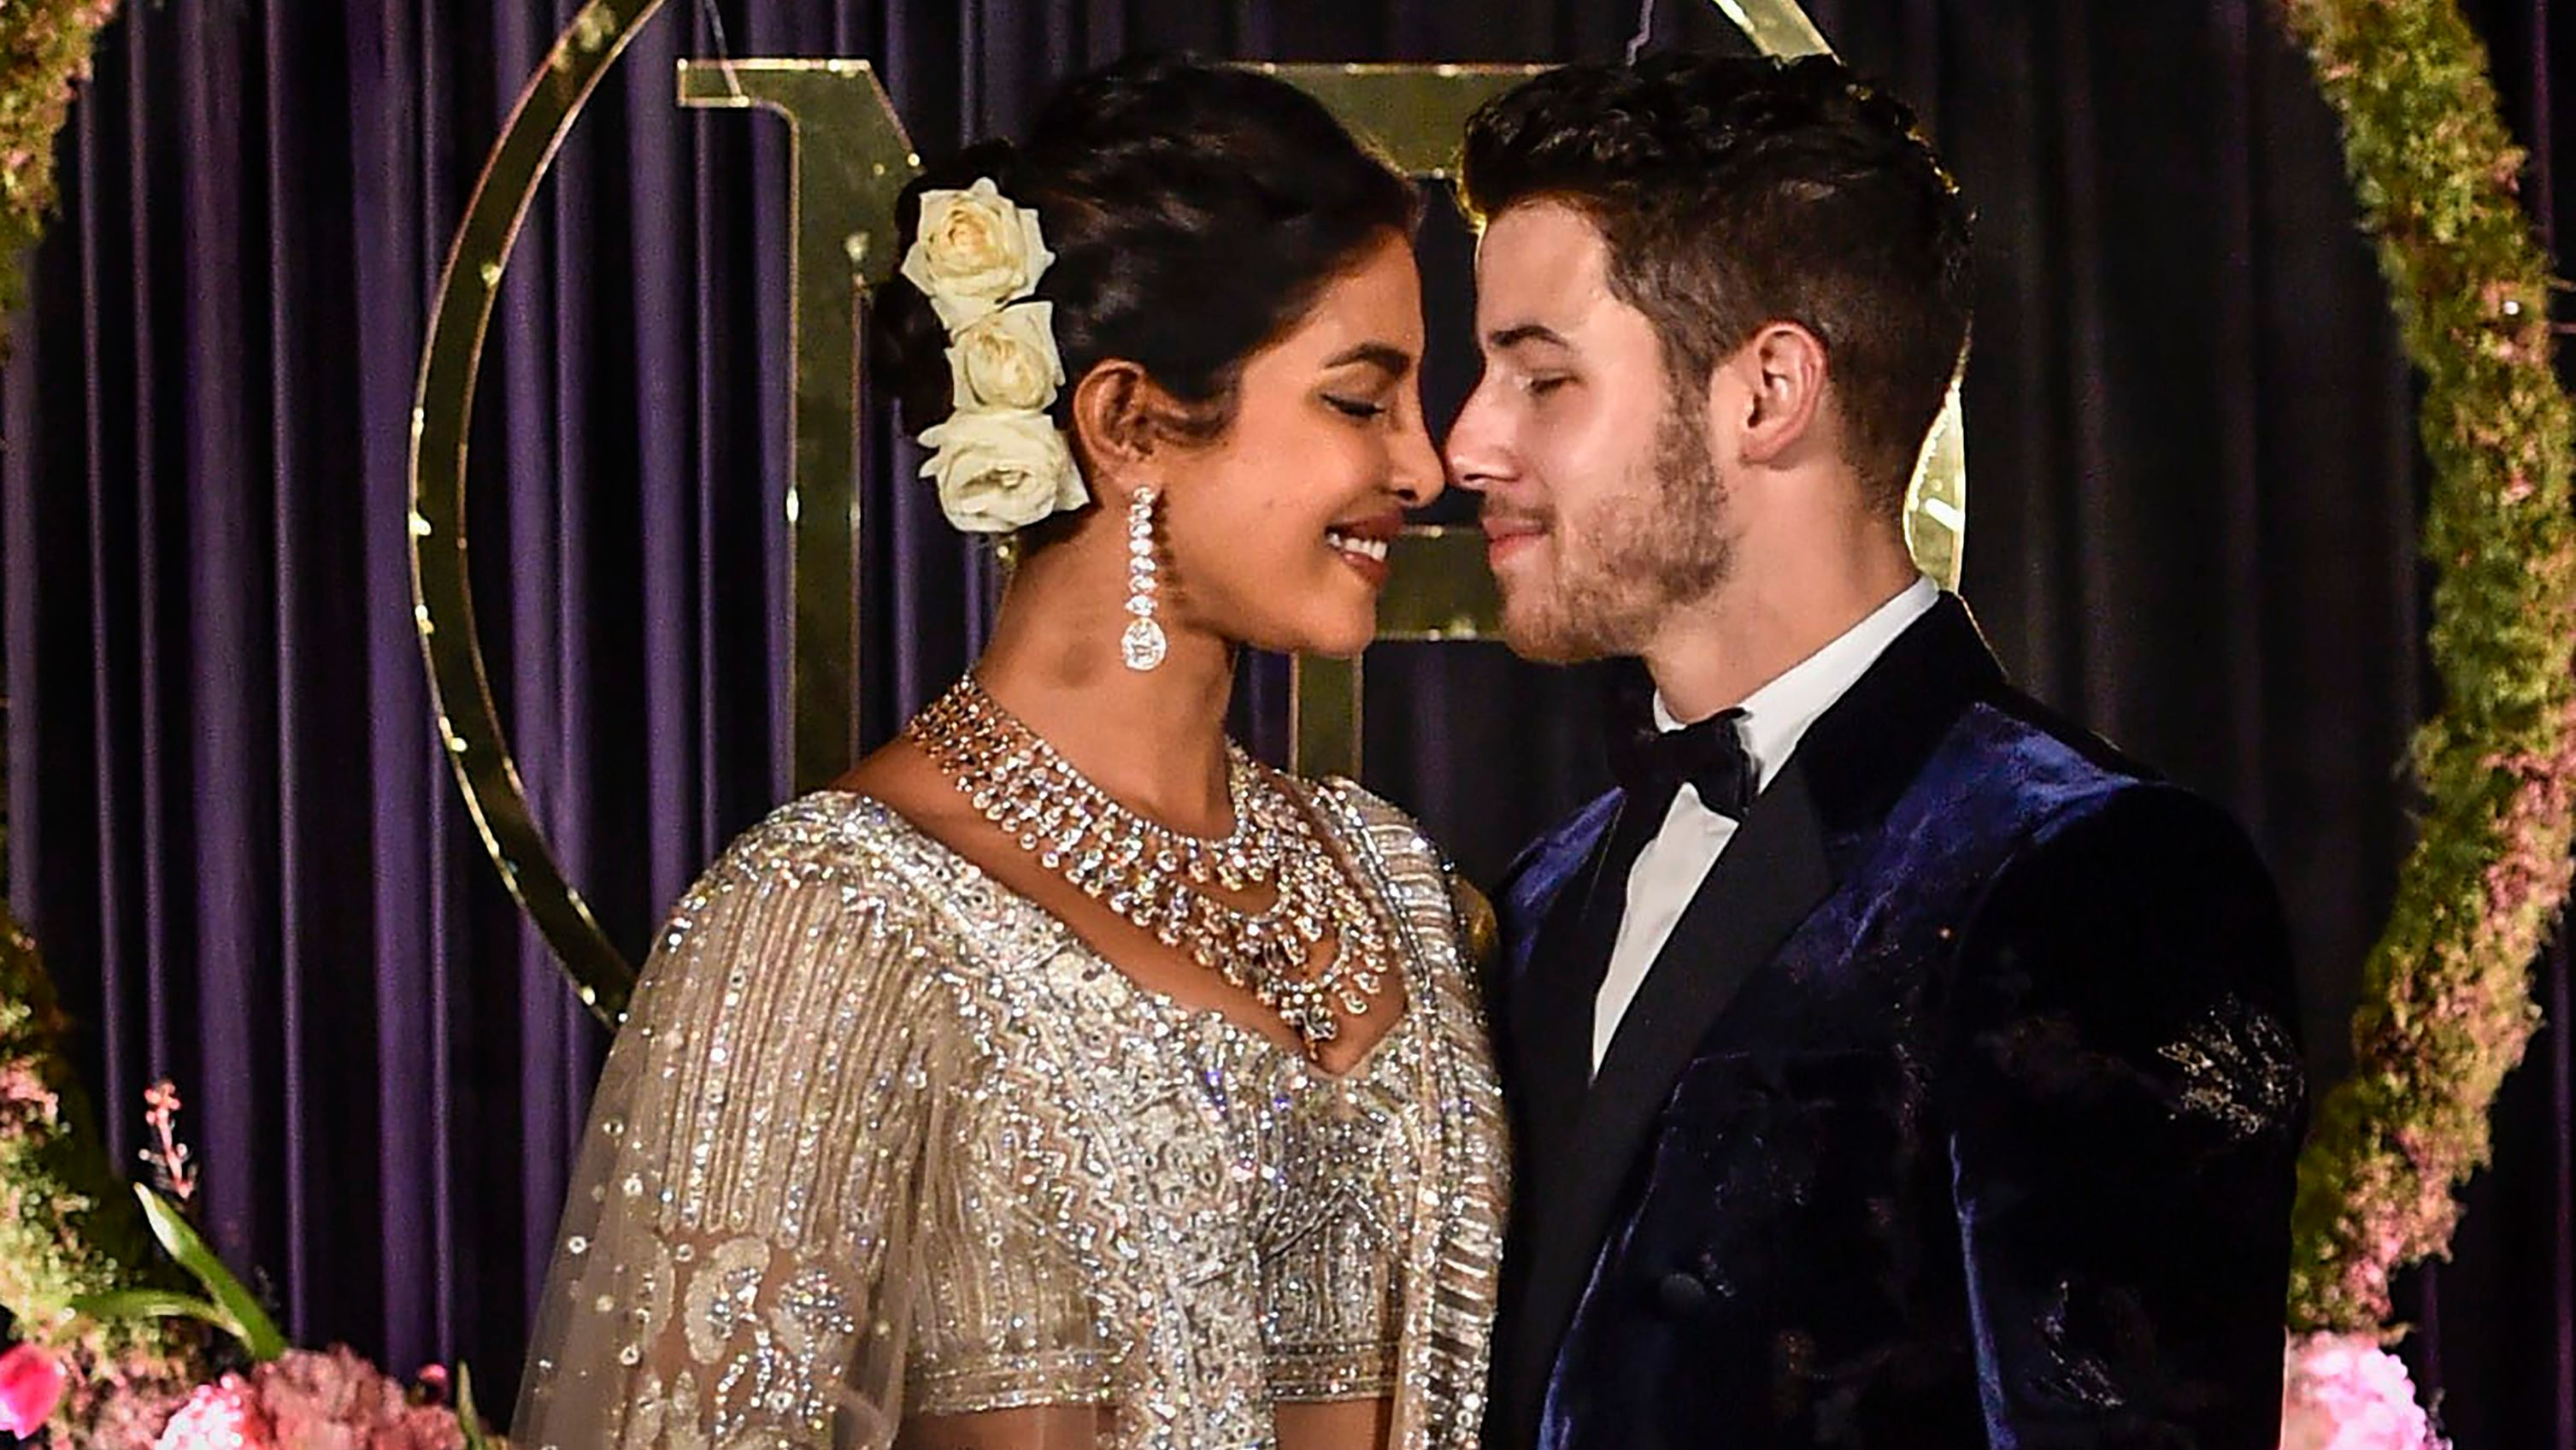 Nick Jonas, actor Priyanka Chopra